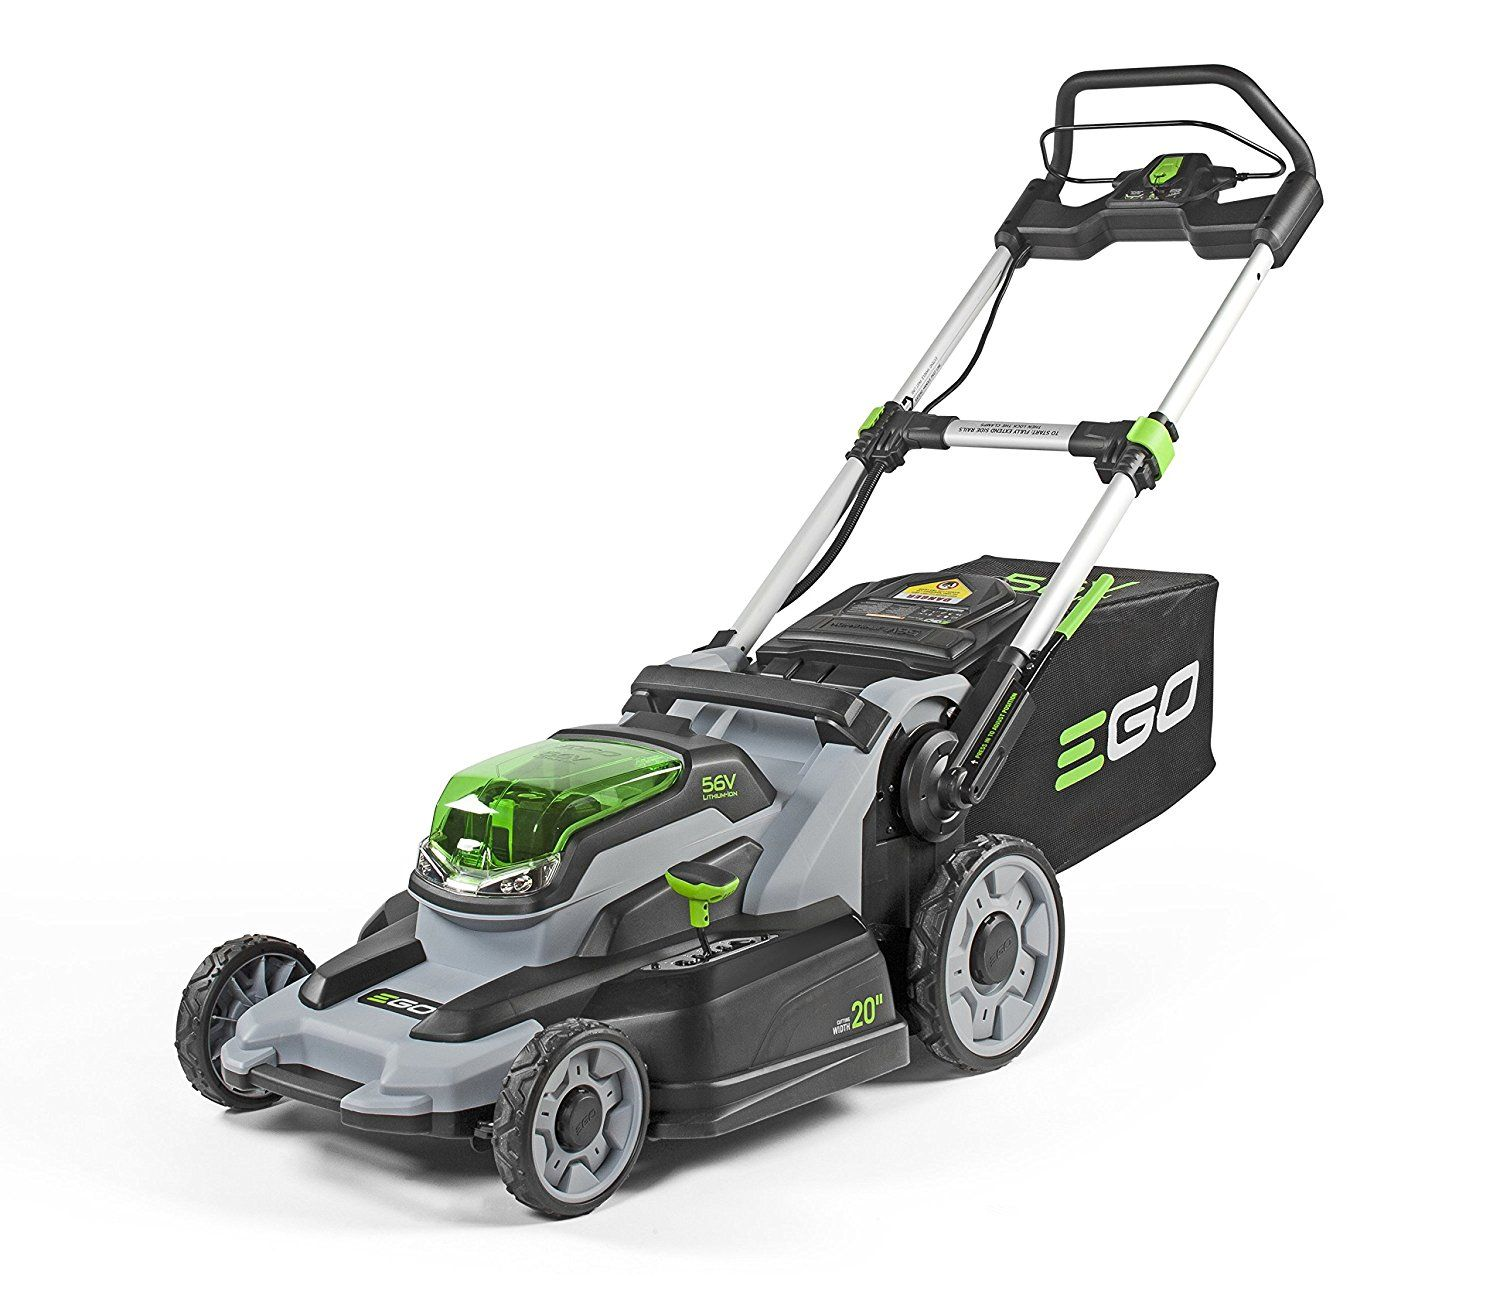 Ego Power 20 Inch 56 Volt Lithium Ion Cordless Lawn Mower 5 0ah Battery And Charger Kit Best Push L Best Lawn Mower Cordless Lawn Mower Lawn Mower Battery